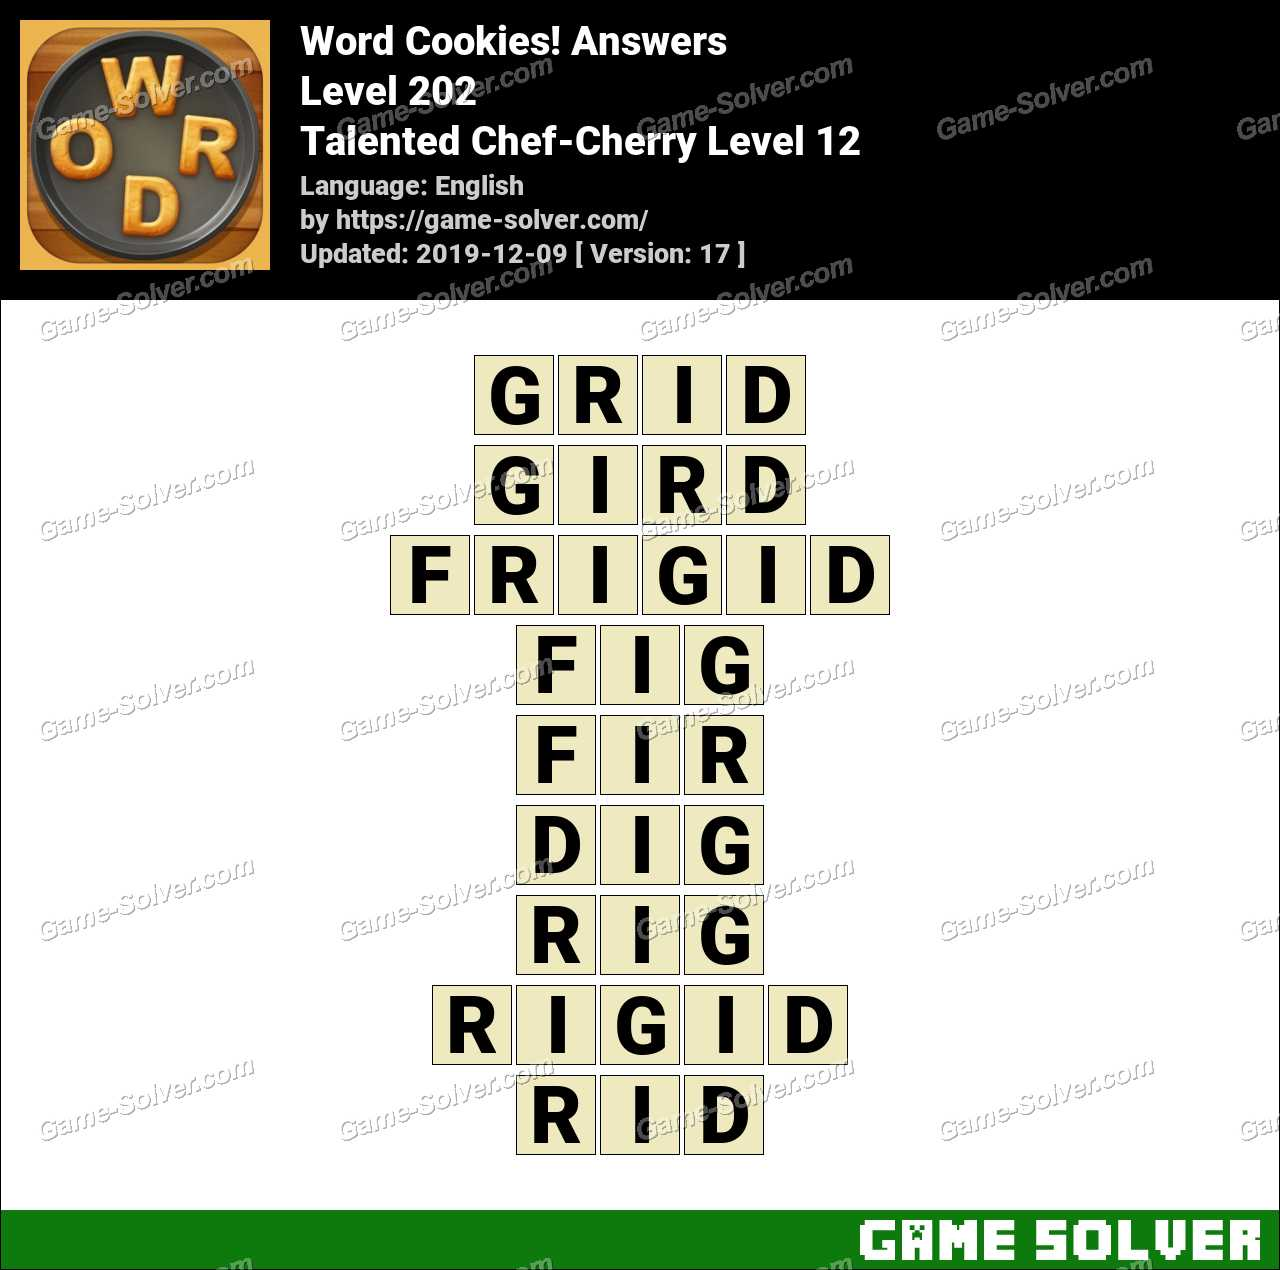 Word Cookies Talented Chef-Cherry Level 12 Answers